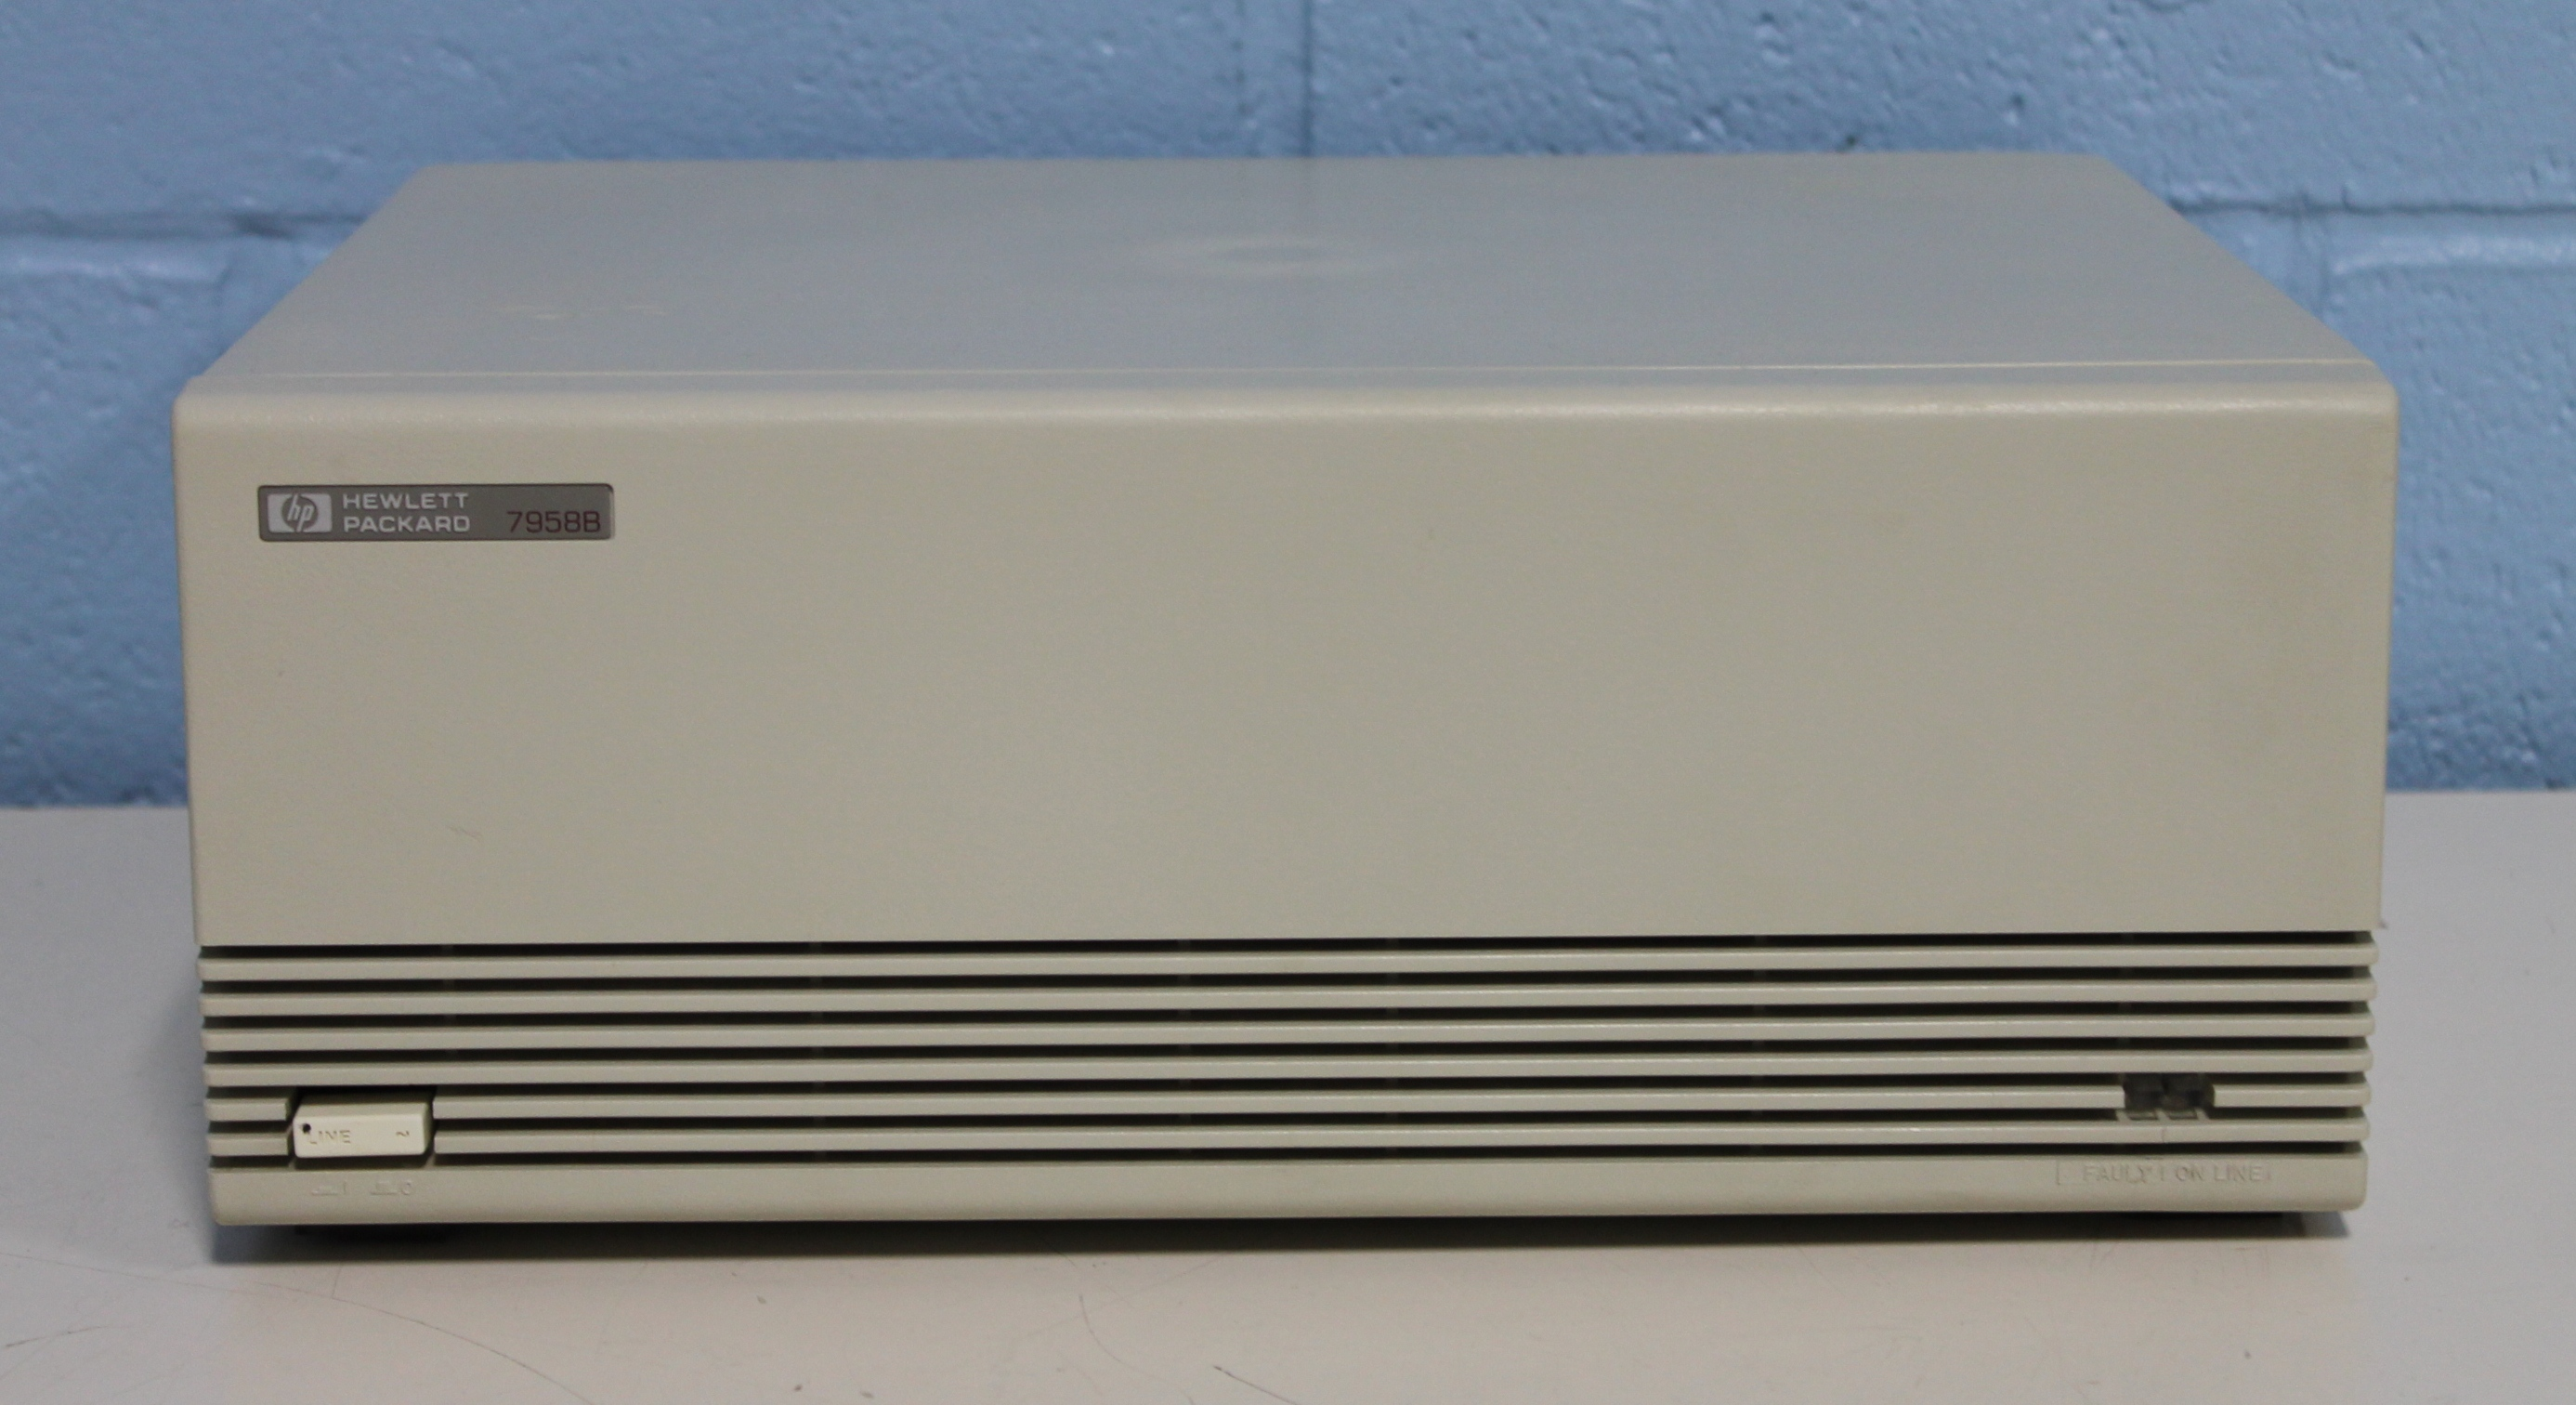 Hewlett Packard 7958B Power Supply Image